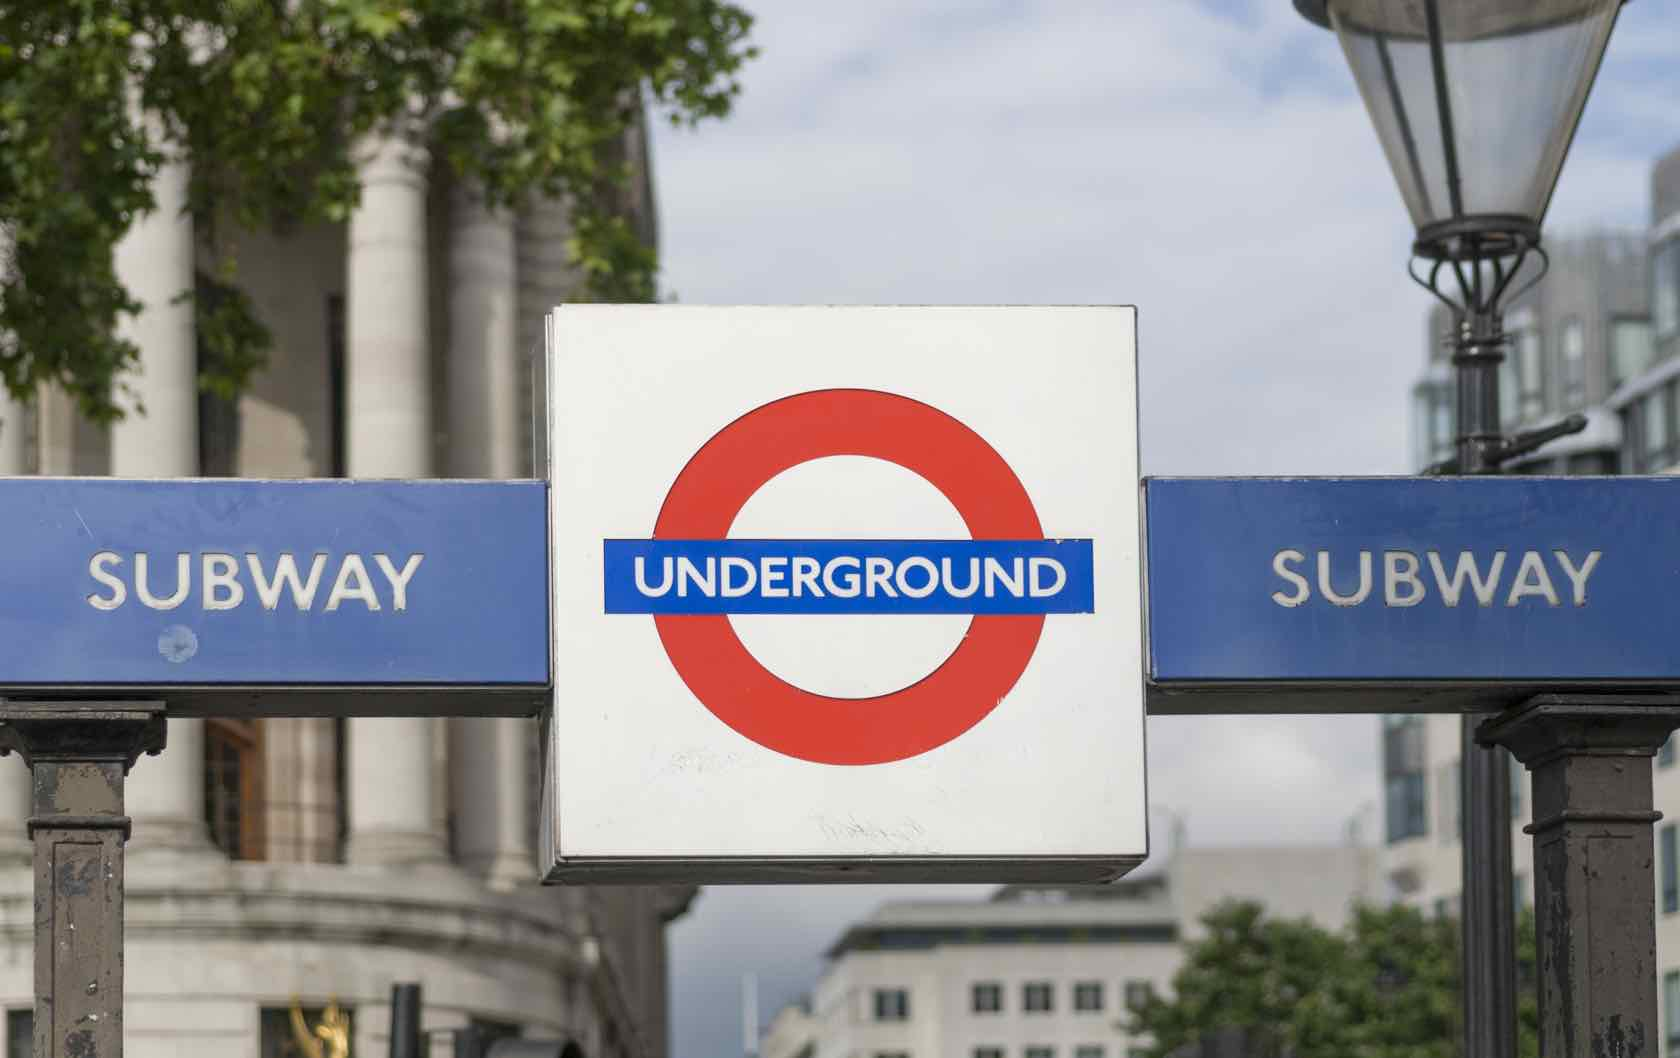 Taking the Tube: Eight Tips For Riding the London Underground